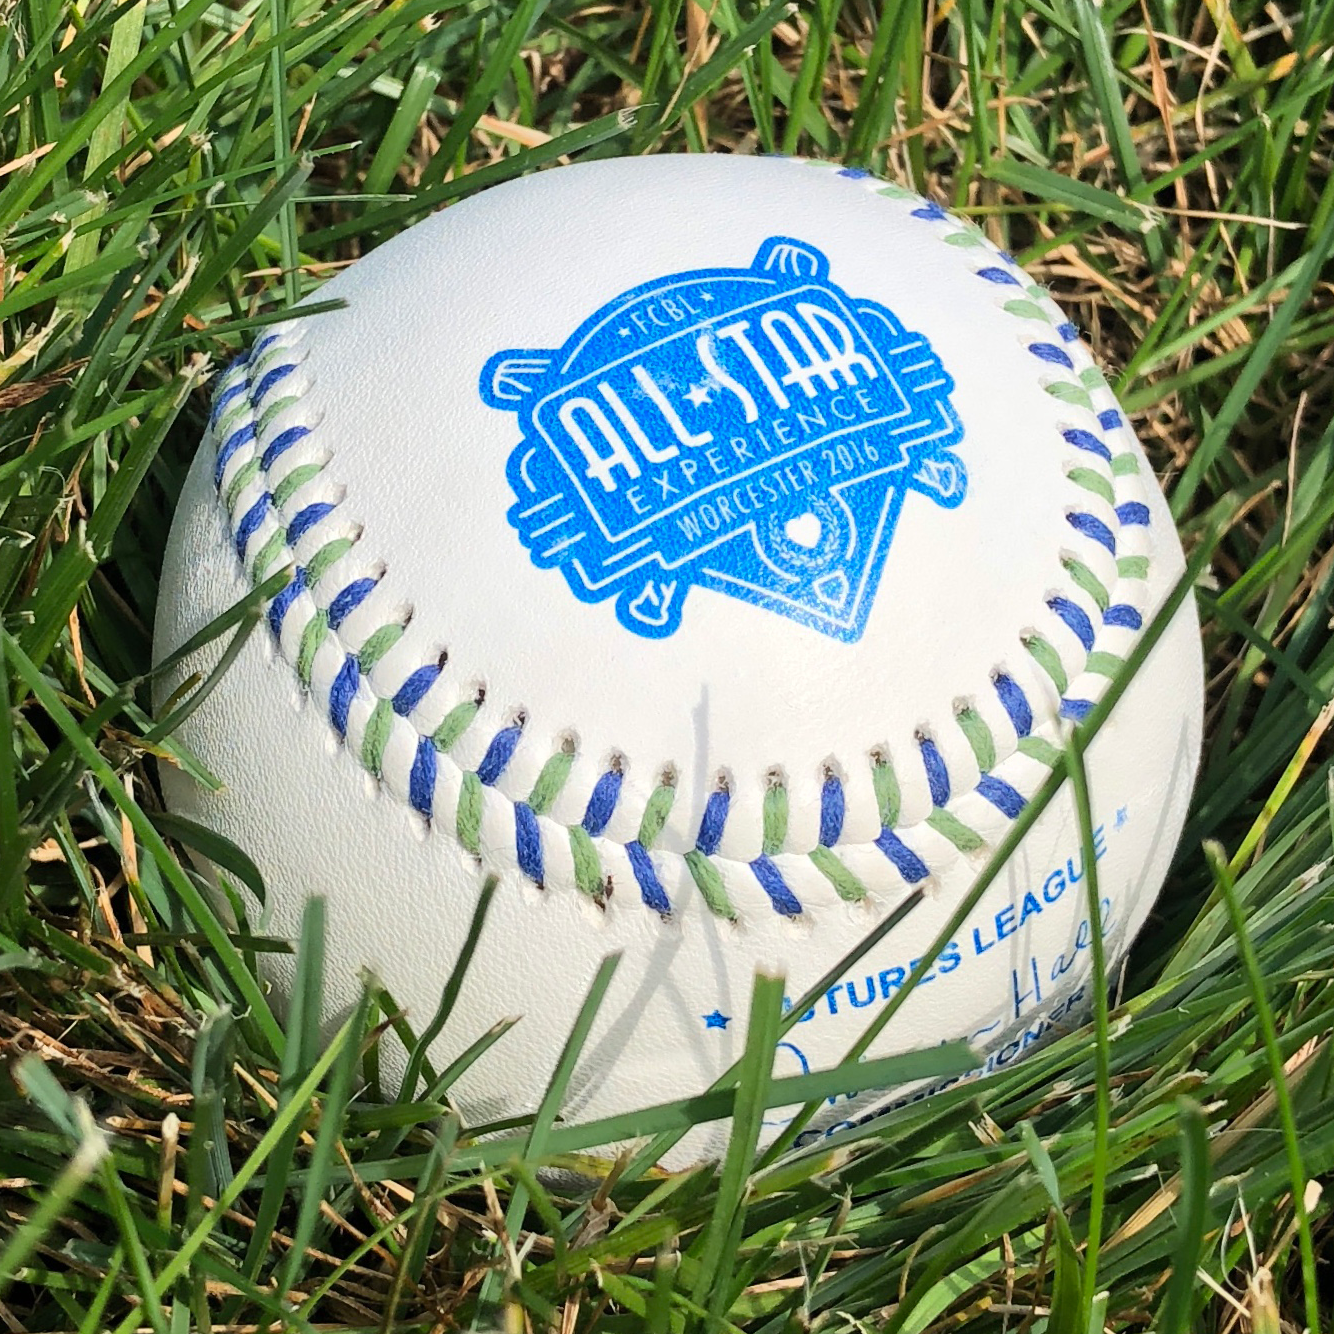 The first time I had a logo on a baseball, even custom stitching!